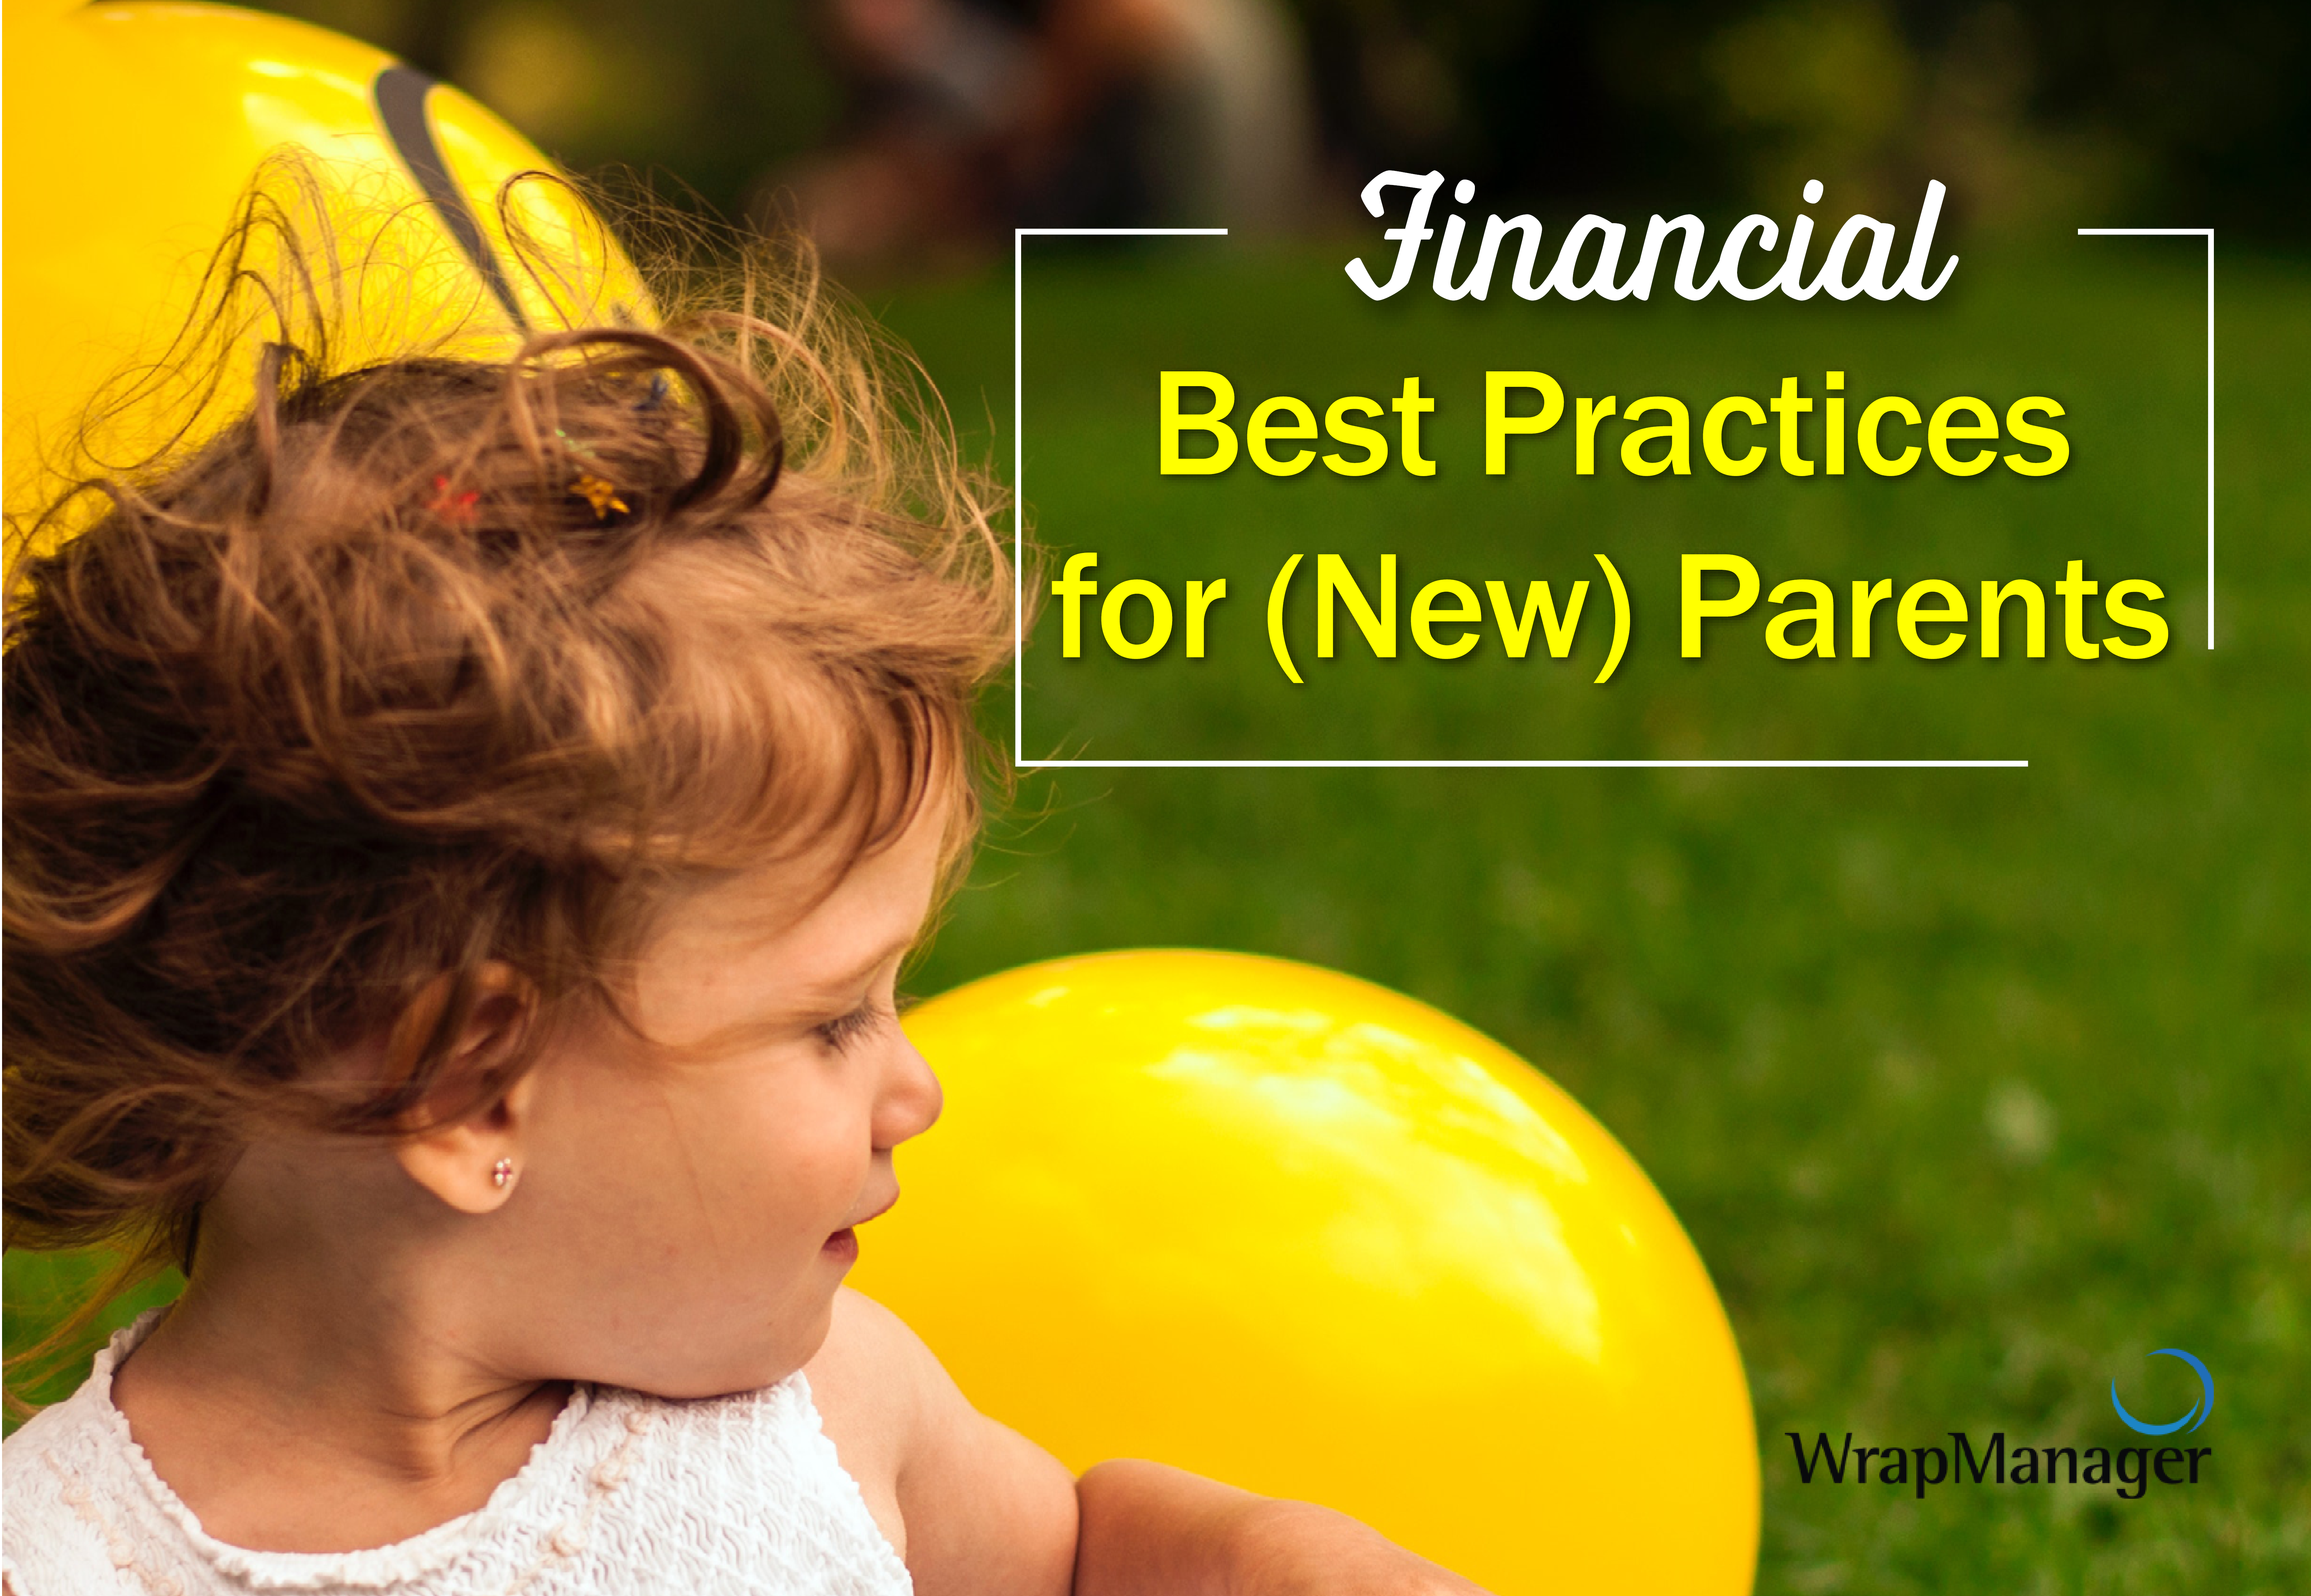 Financial Best Practices for New Parents